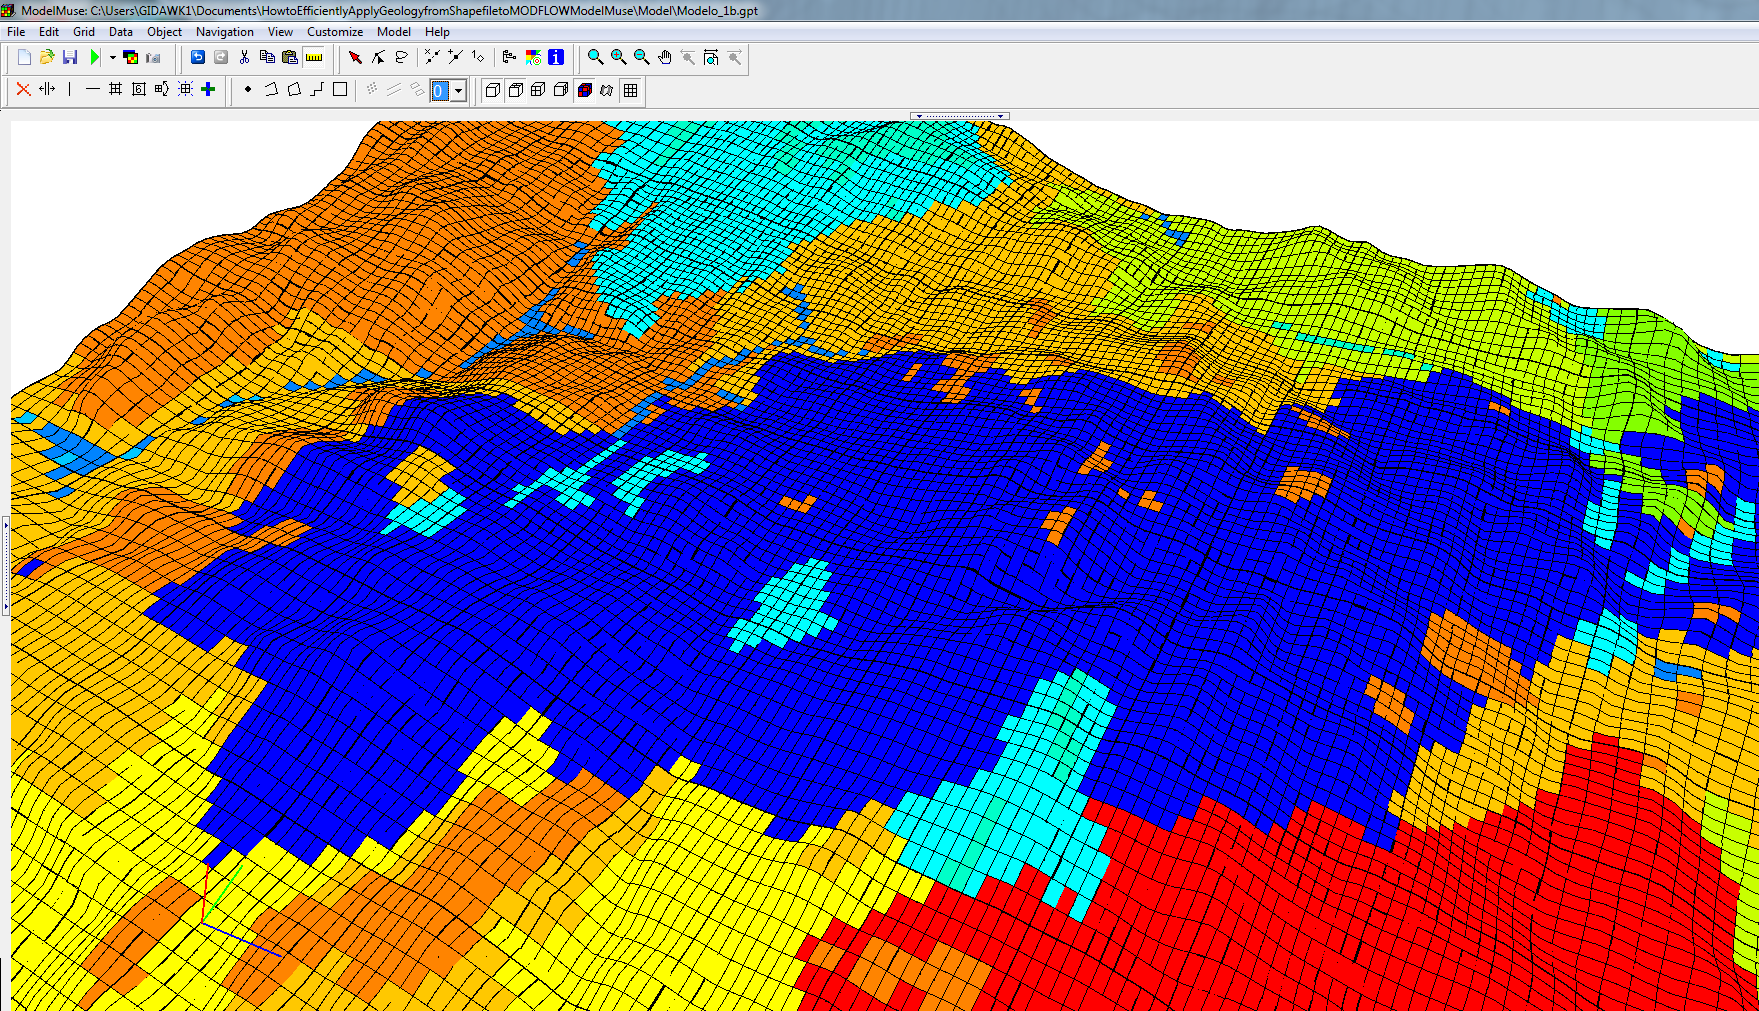 How to efficiently apply Geology from Shapefiles to MODFLOW